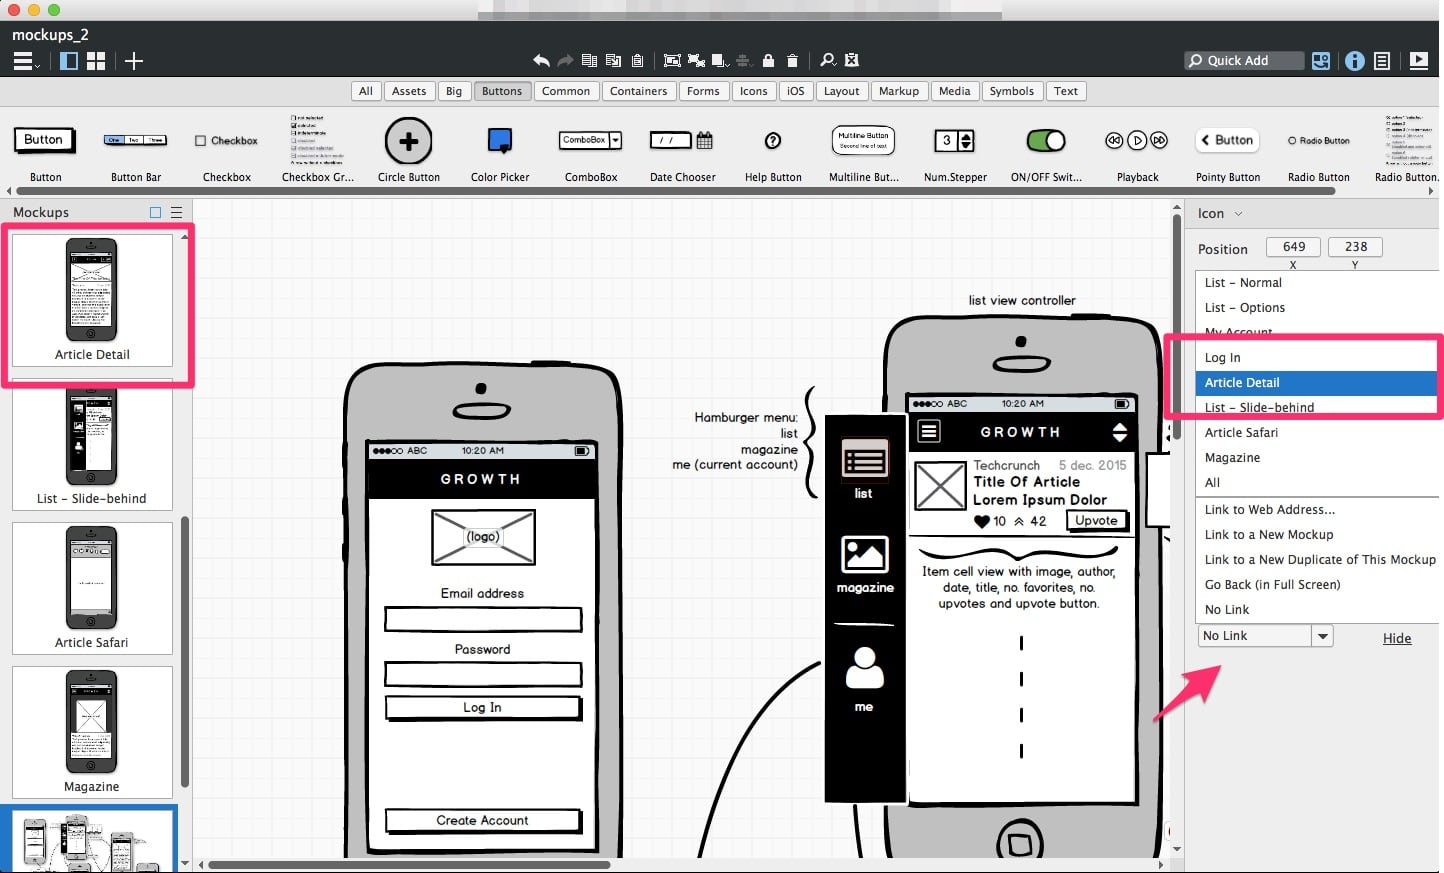 How to Launch an App, Mockups in Balsamiq Mockups